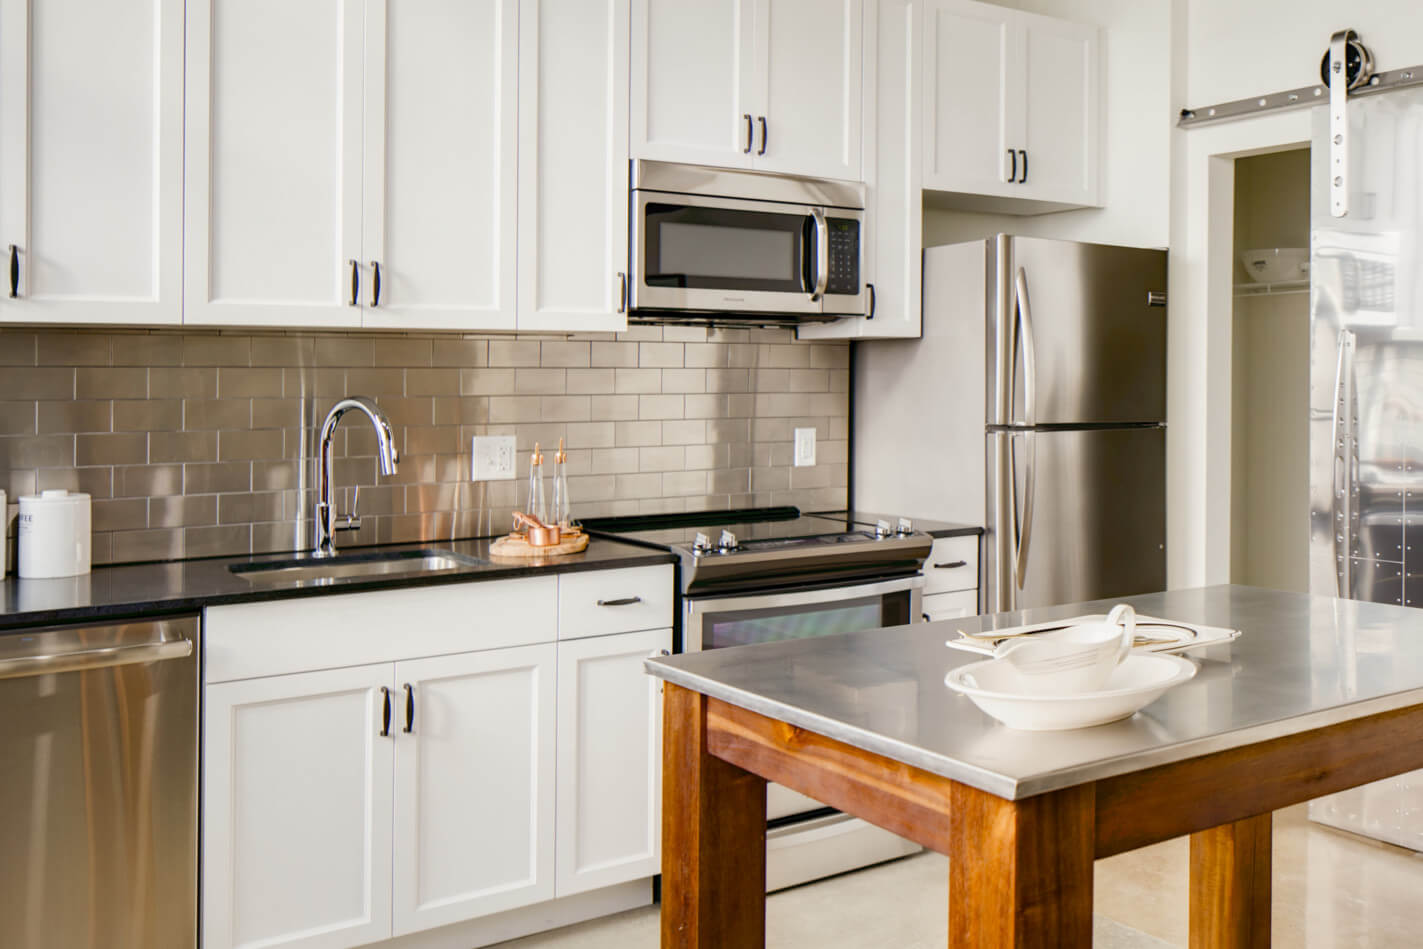 Best Apartment Kitchens In DC | Hecht Warehouse Apartments In Ivy City |  Washington DC Apartments